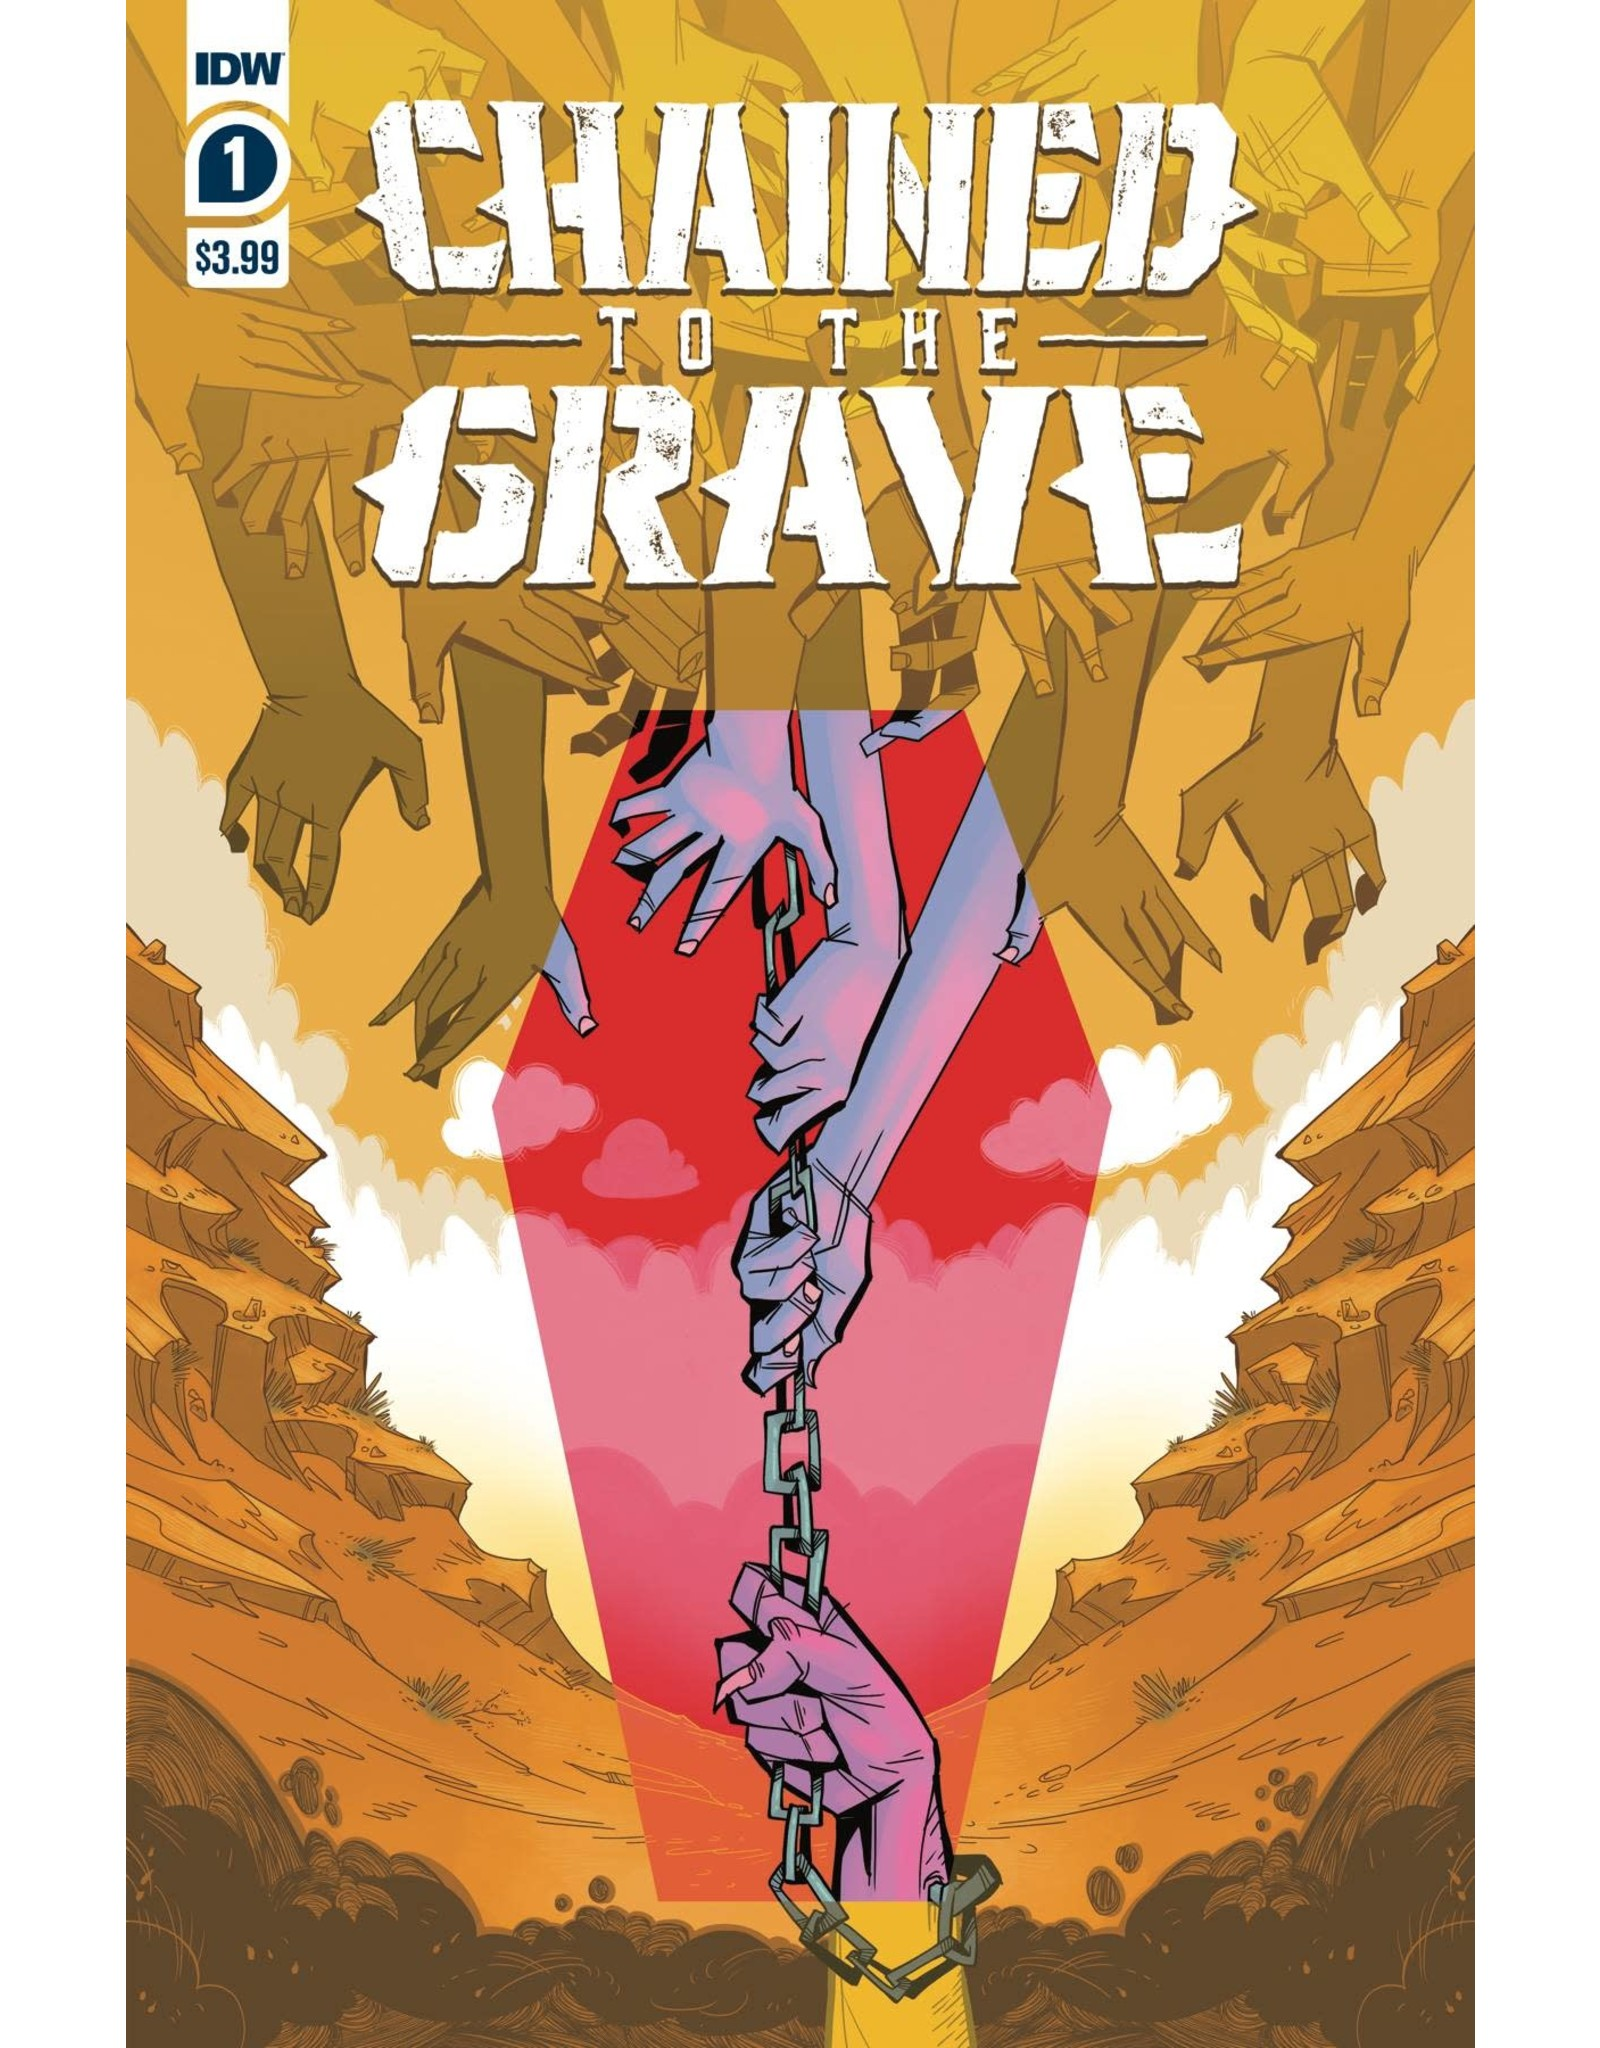 IDW PUBLISHING CHAINED TO THE GRAVE #1 (OF 5) CVR A SHERRON